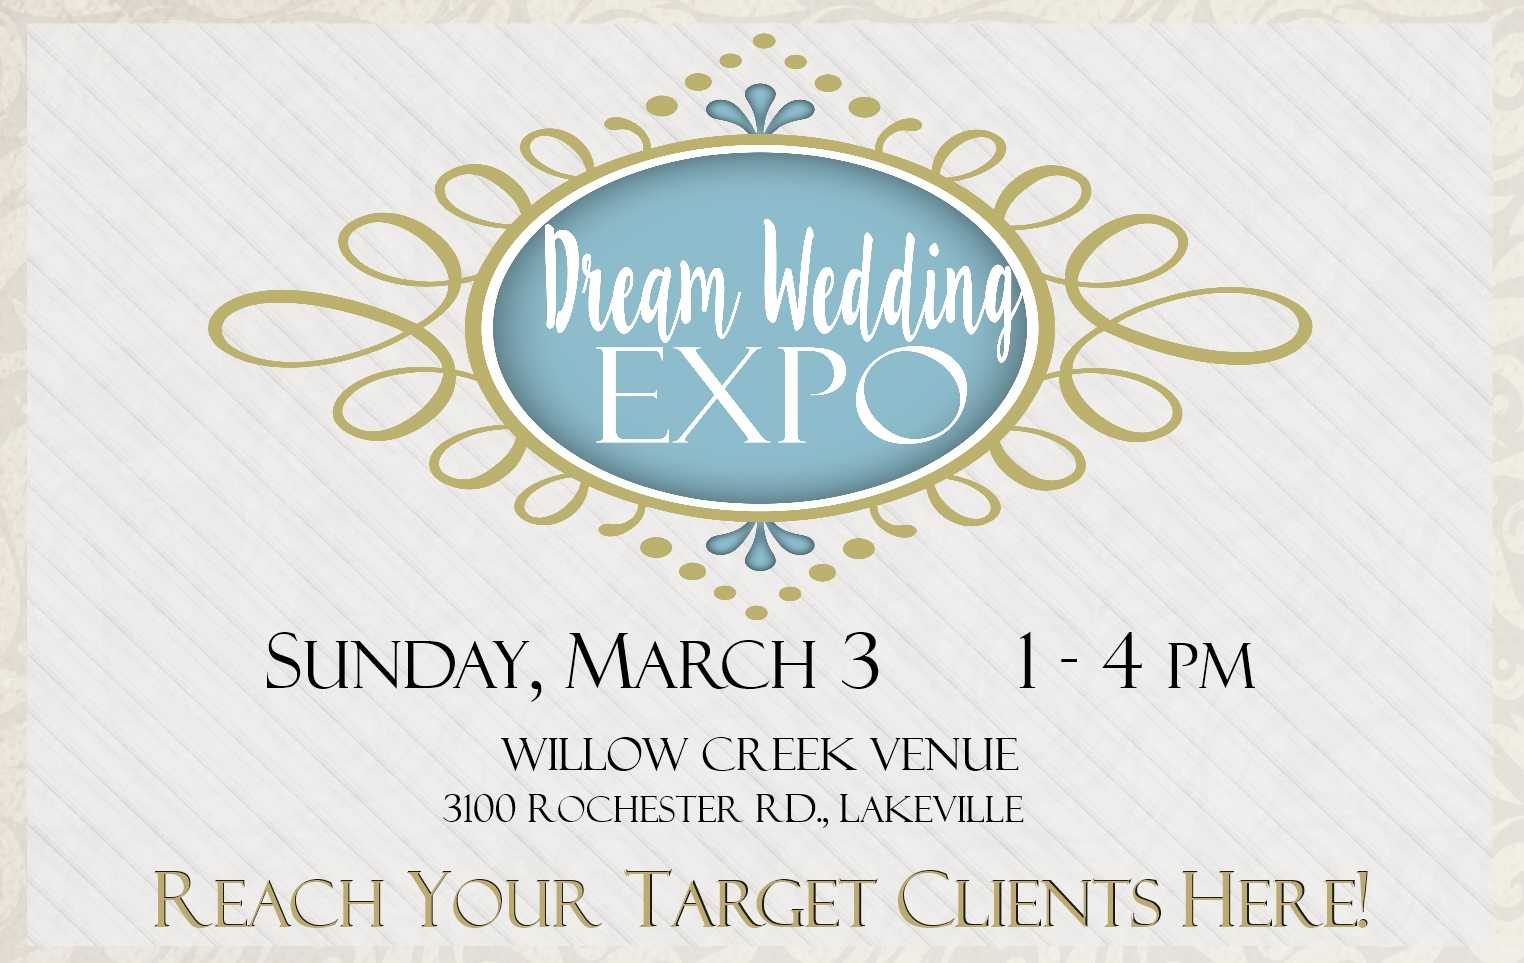 Dream Wedding Expo, Bridal Show, Weddings IN Livingston, Livingston County Chamber, Destination Weddings, Rochester Weddings, Western NY Weddings, GLOW Weddings,